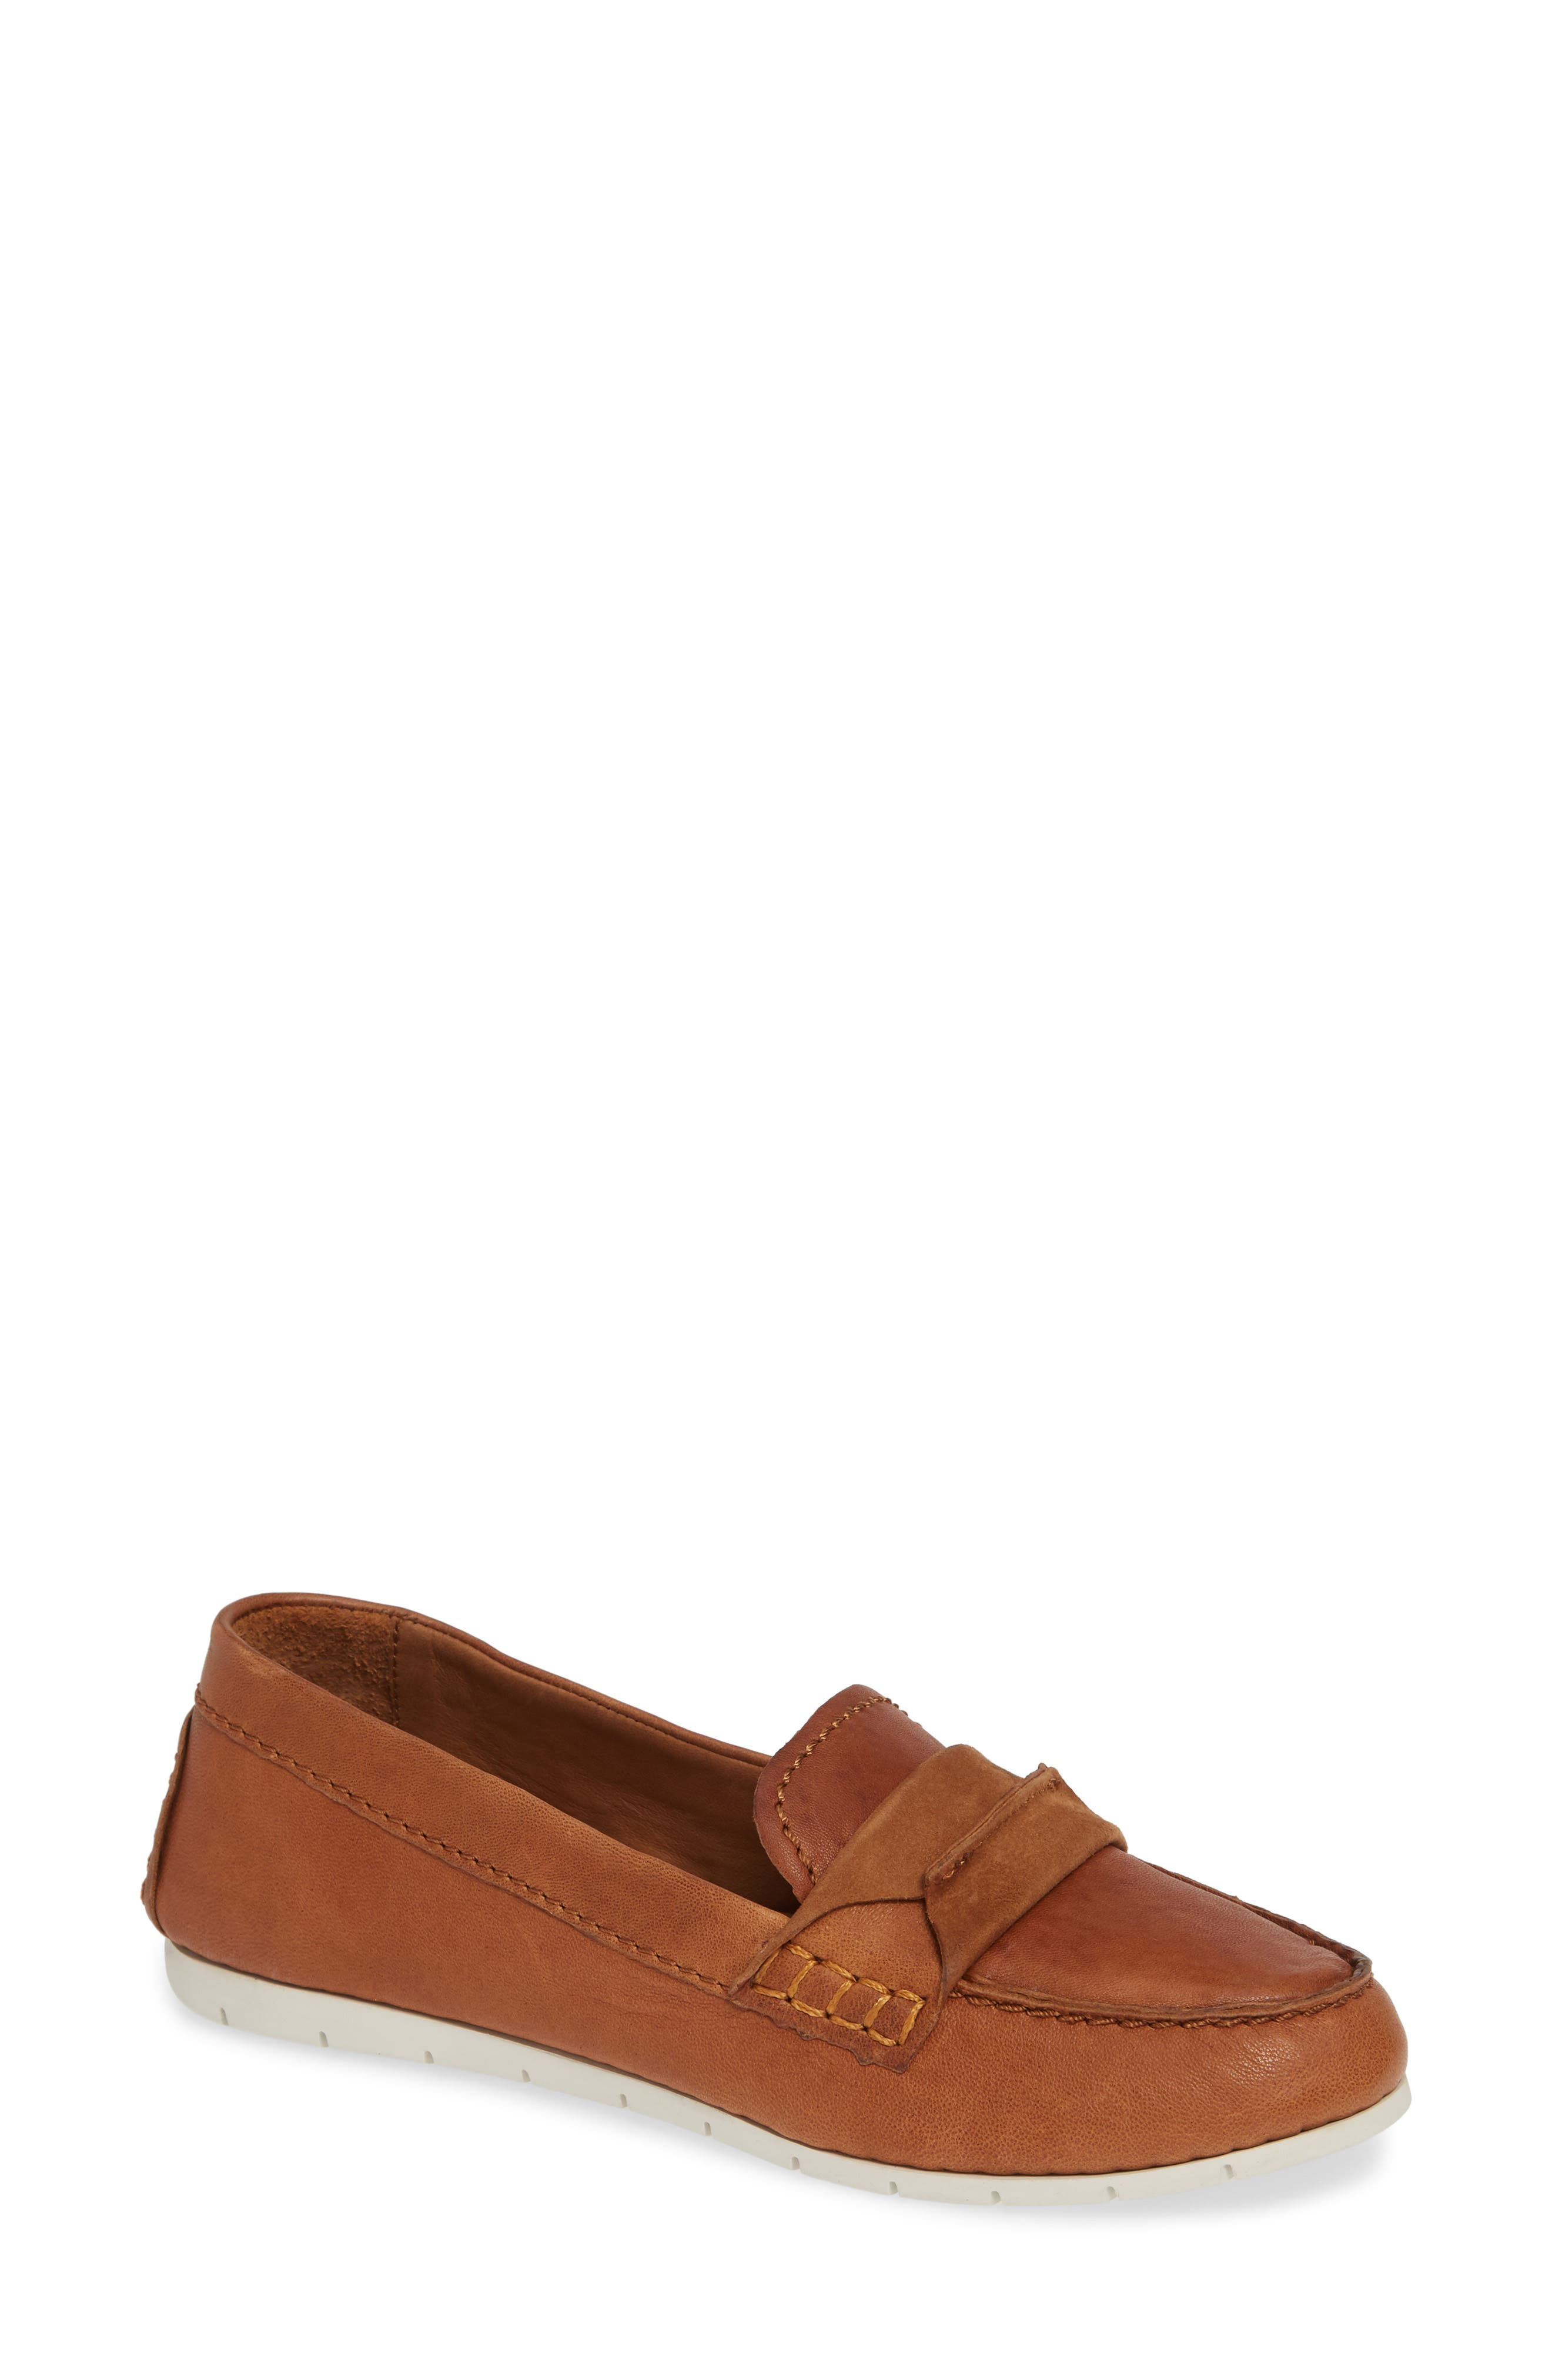 Frye Sedona Top Seam Moccasin Loafer, Brown